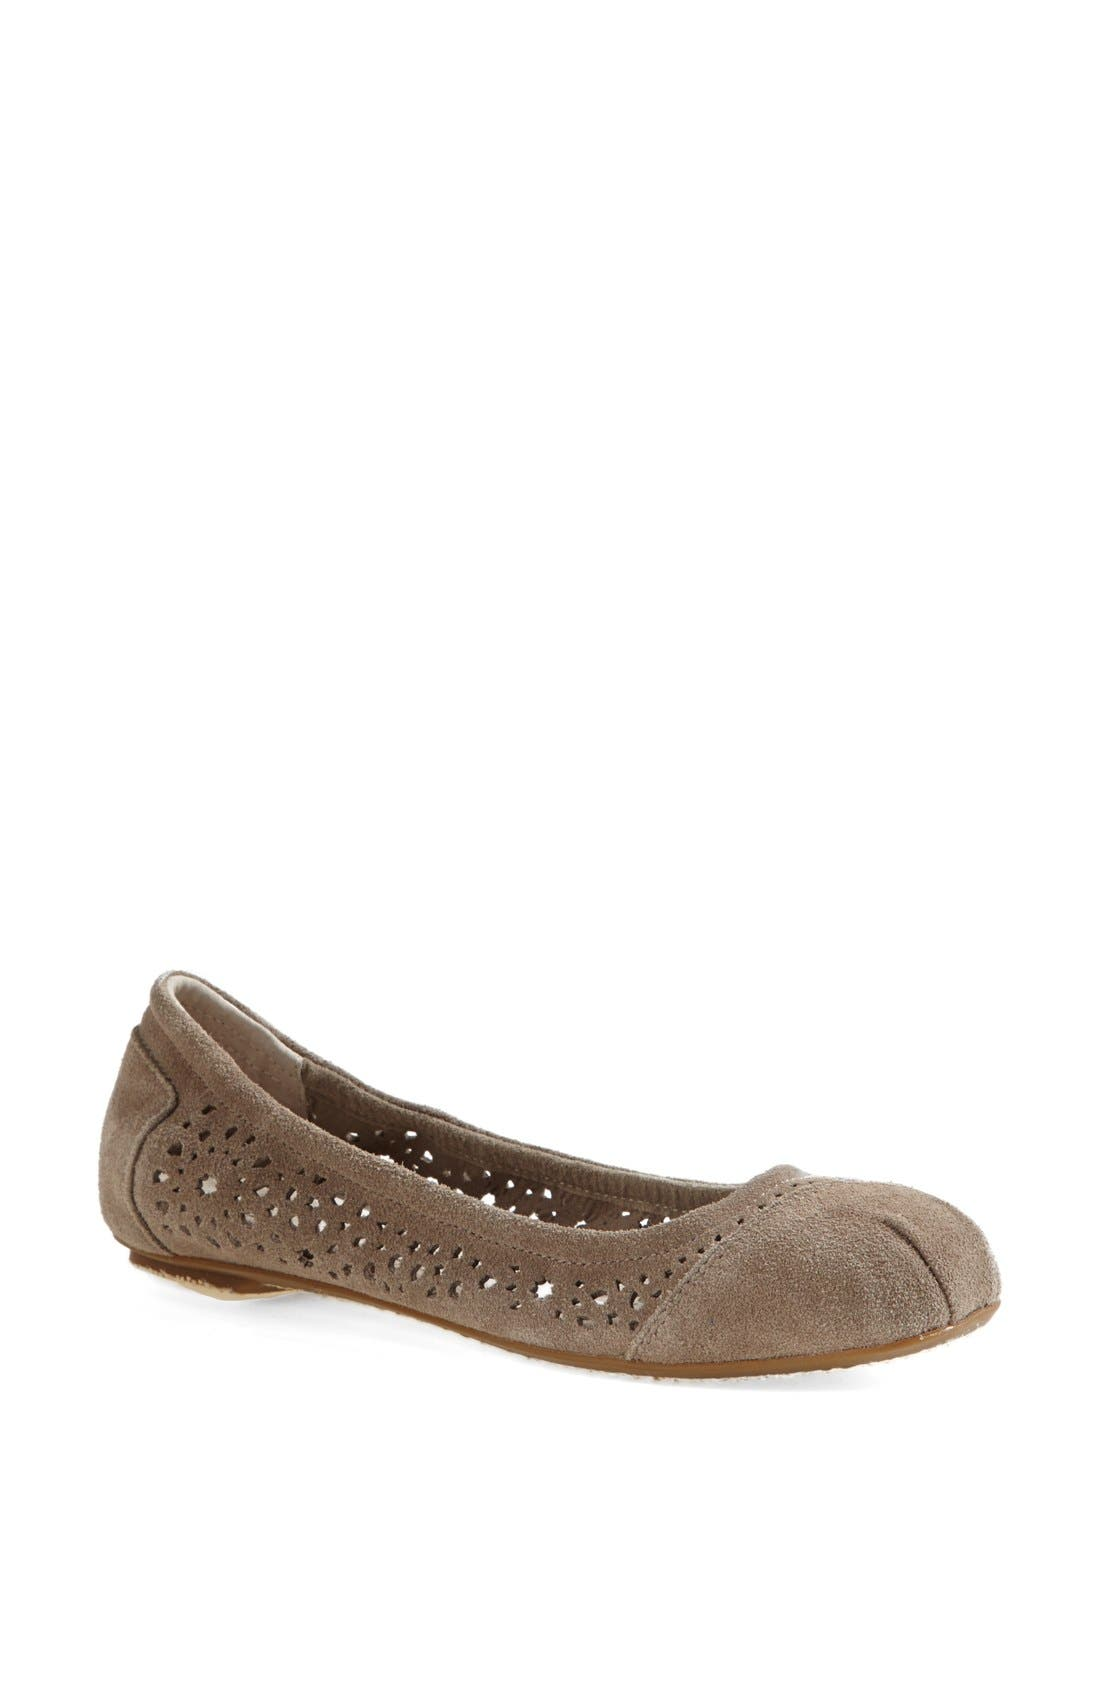 Main Image - TOMS 'Moroccan' Perforated Ballet Flat (Women)